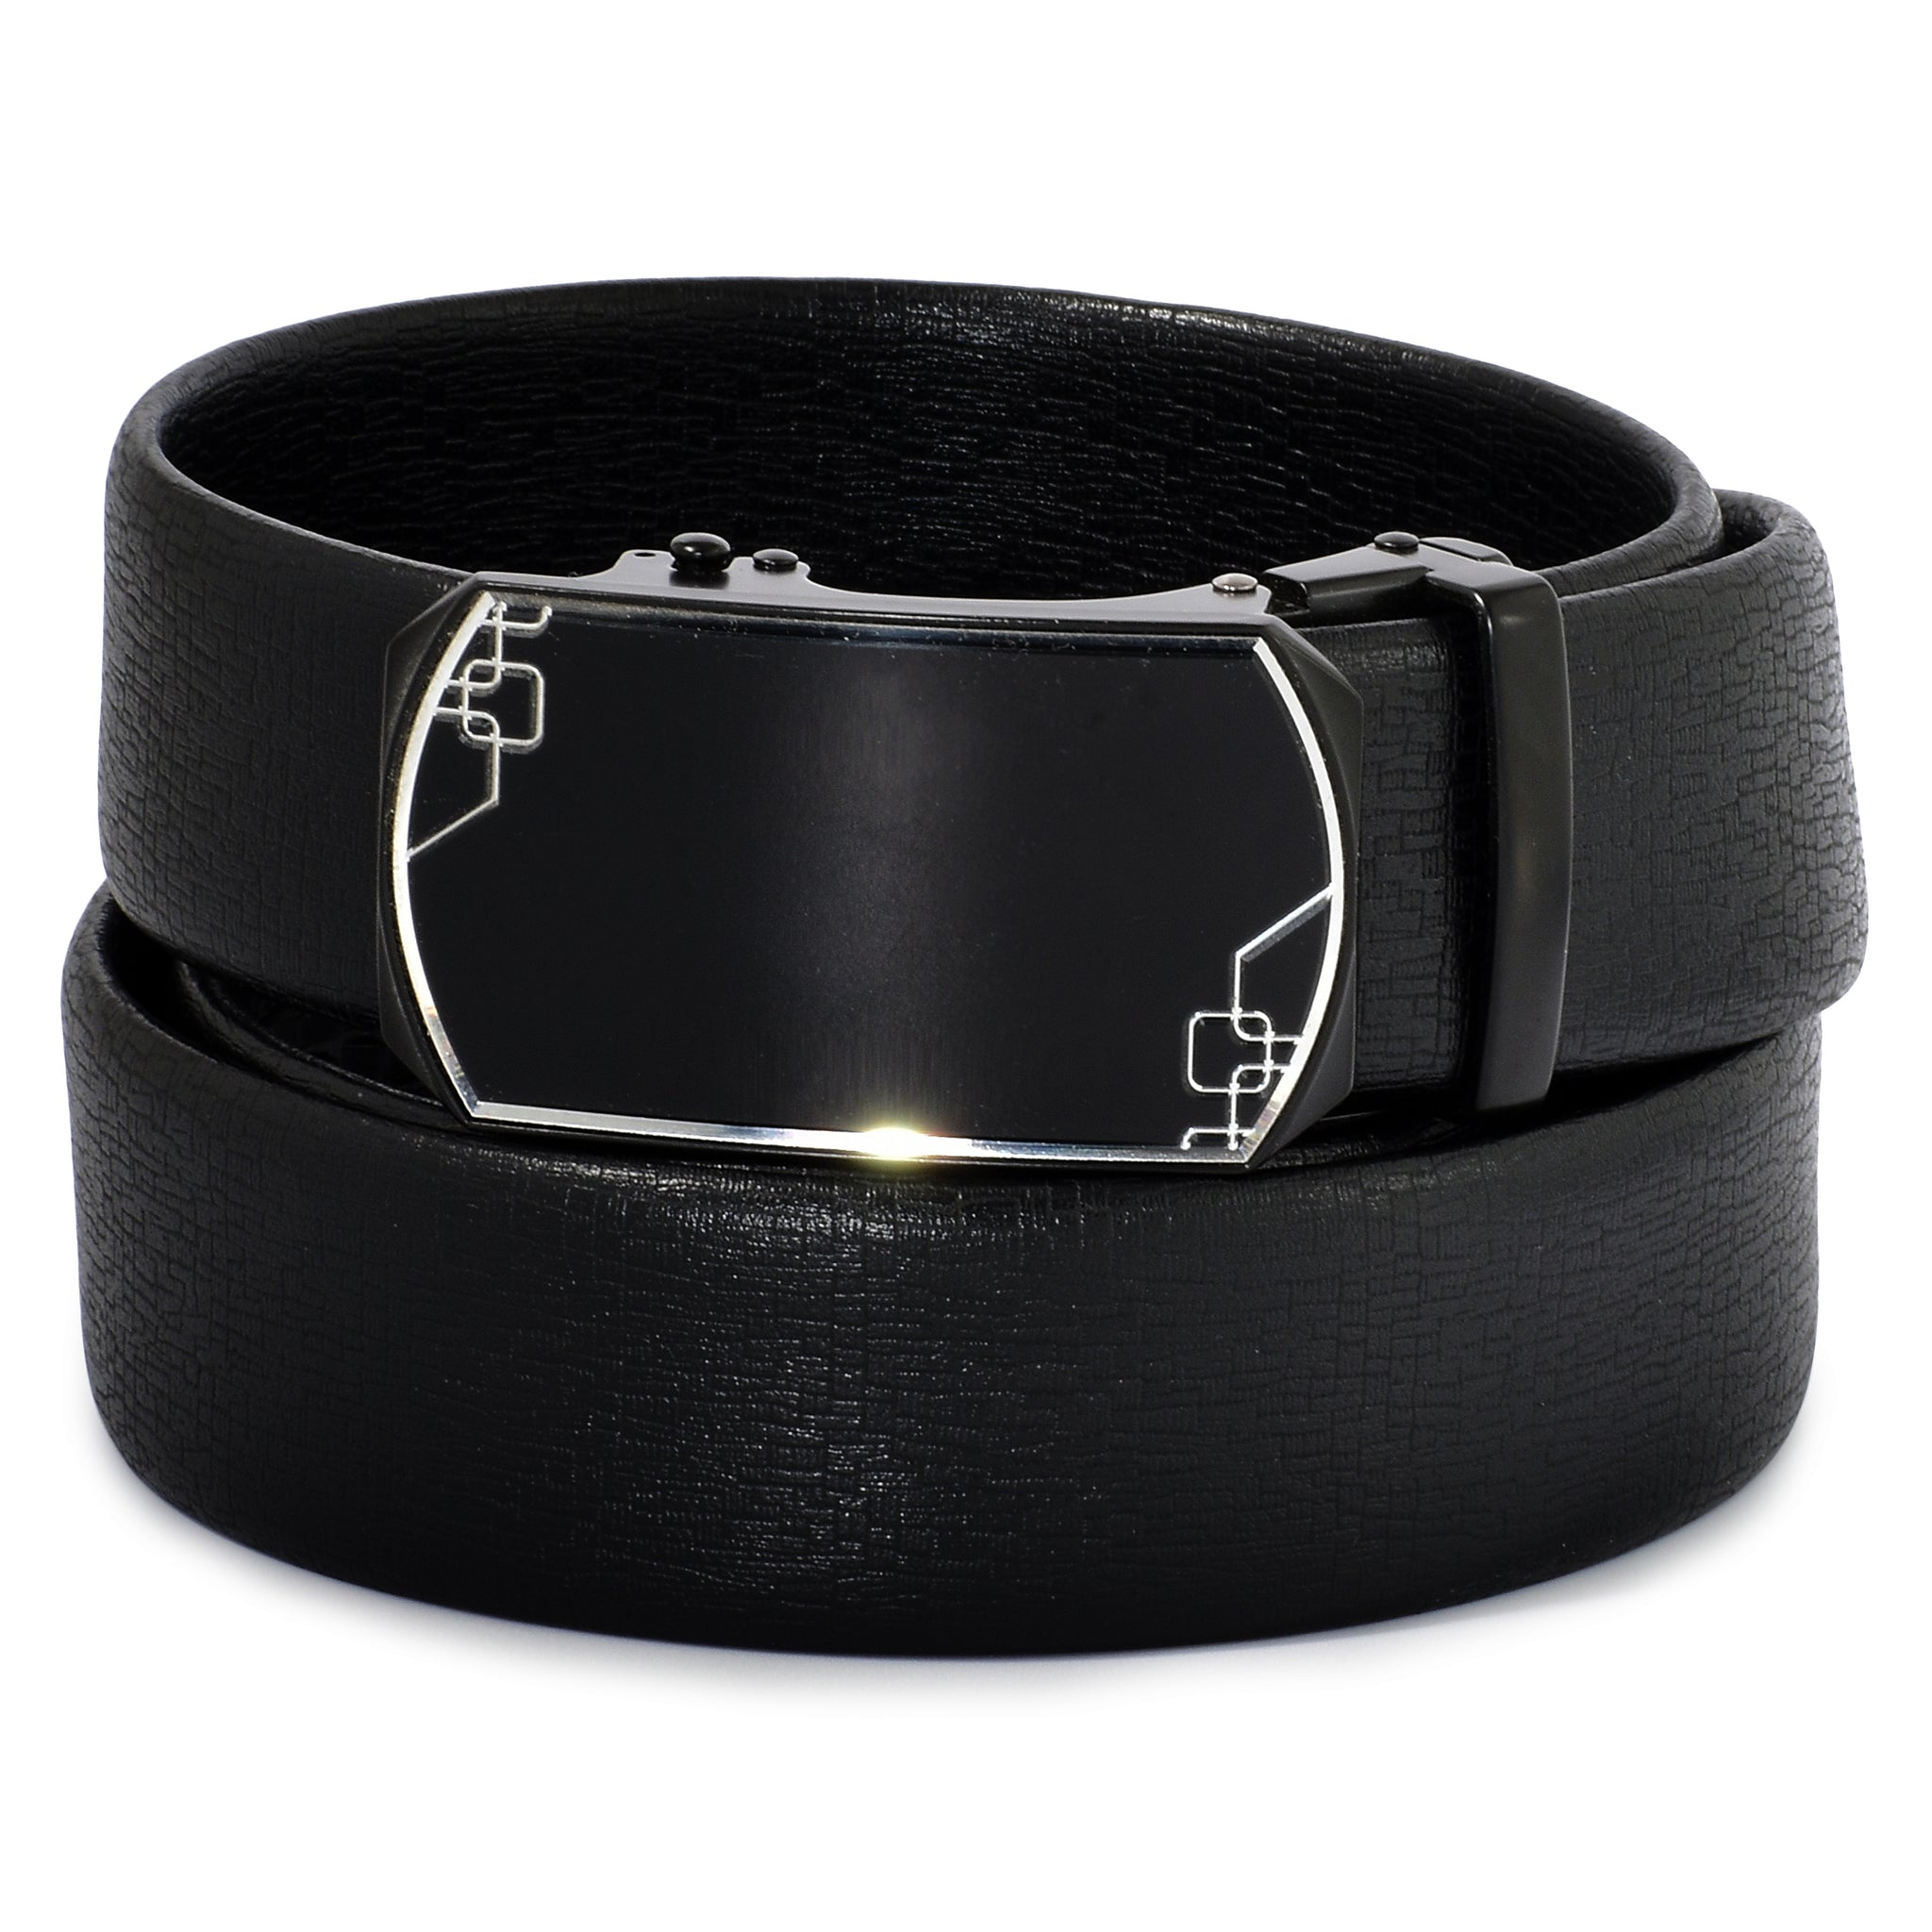 Ficuster Men Autolock Metal Buckle Black Matte Finish Textured PU Leather Belt